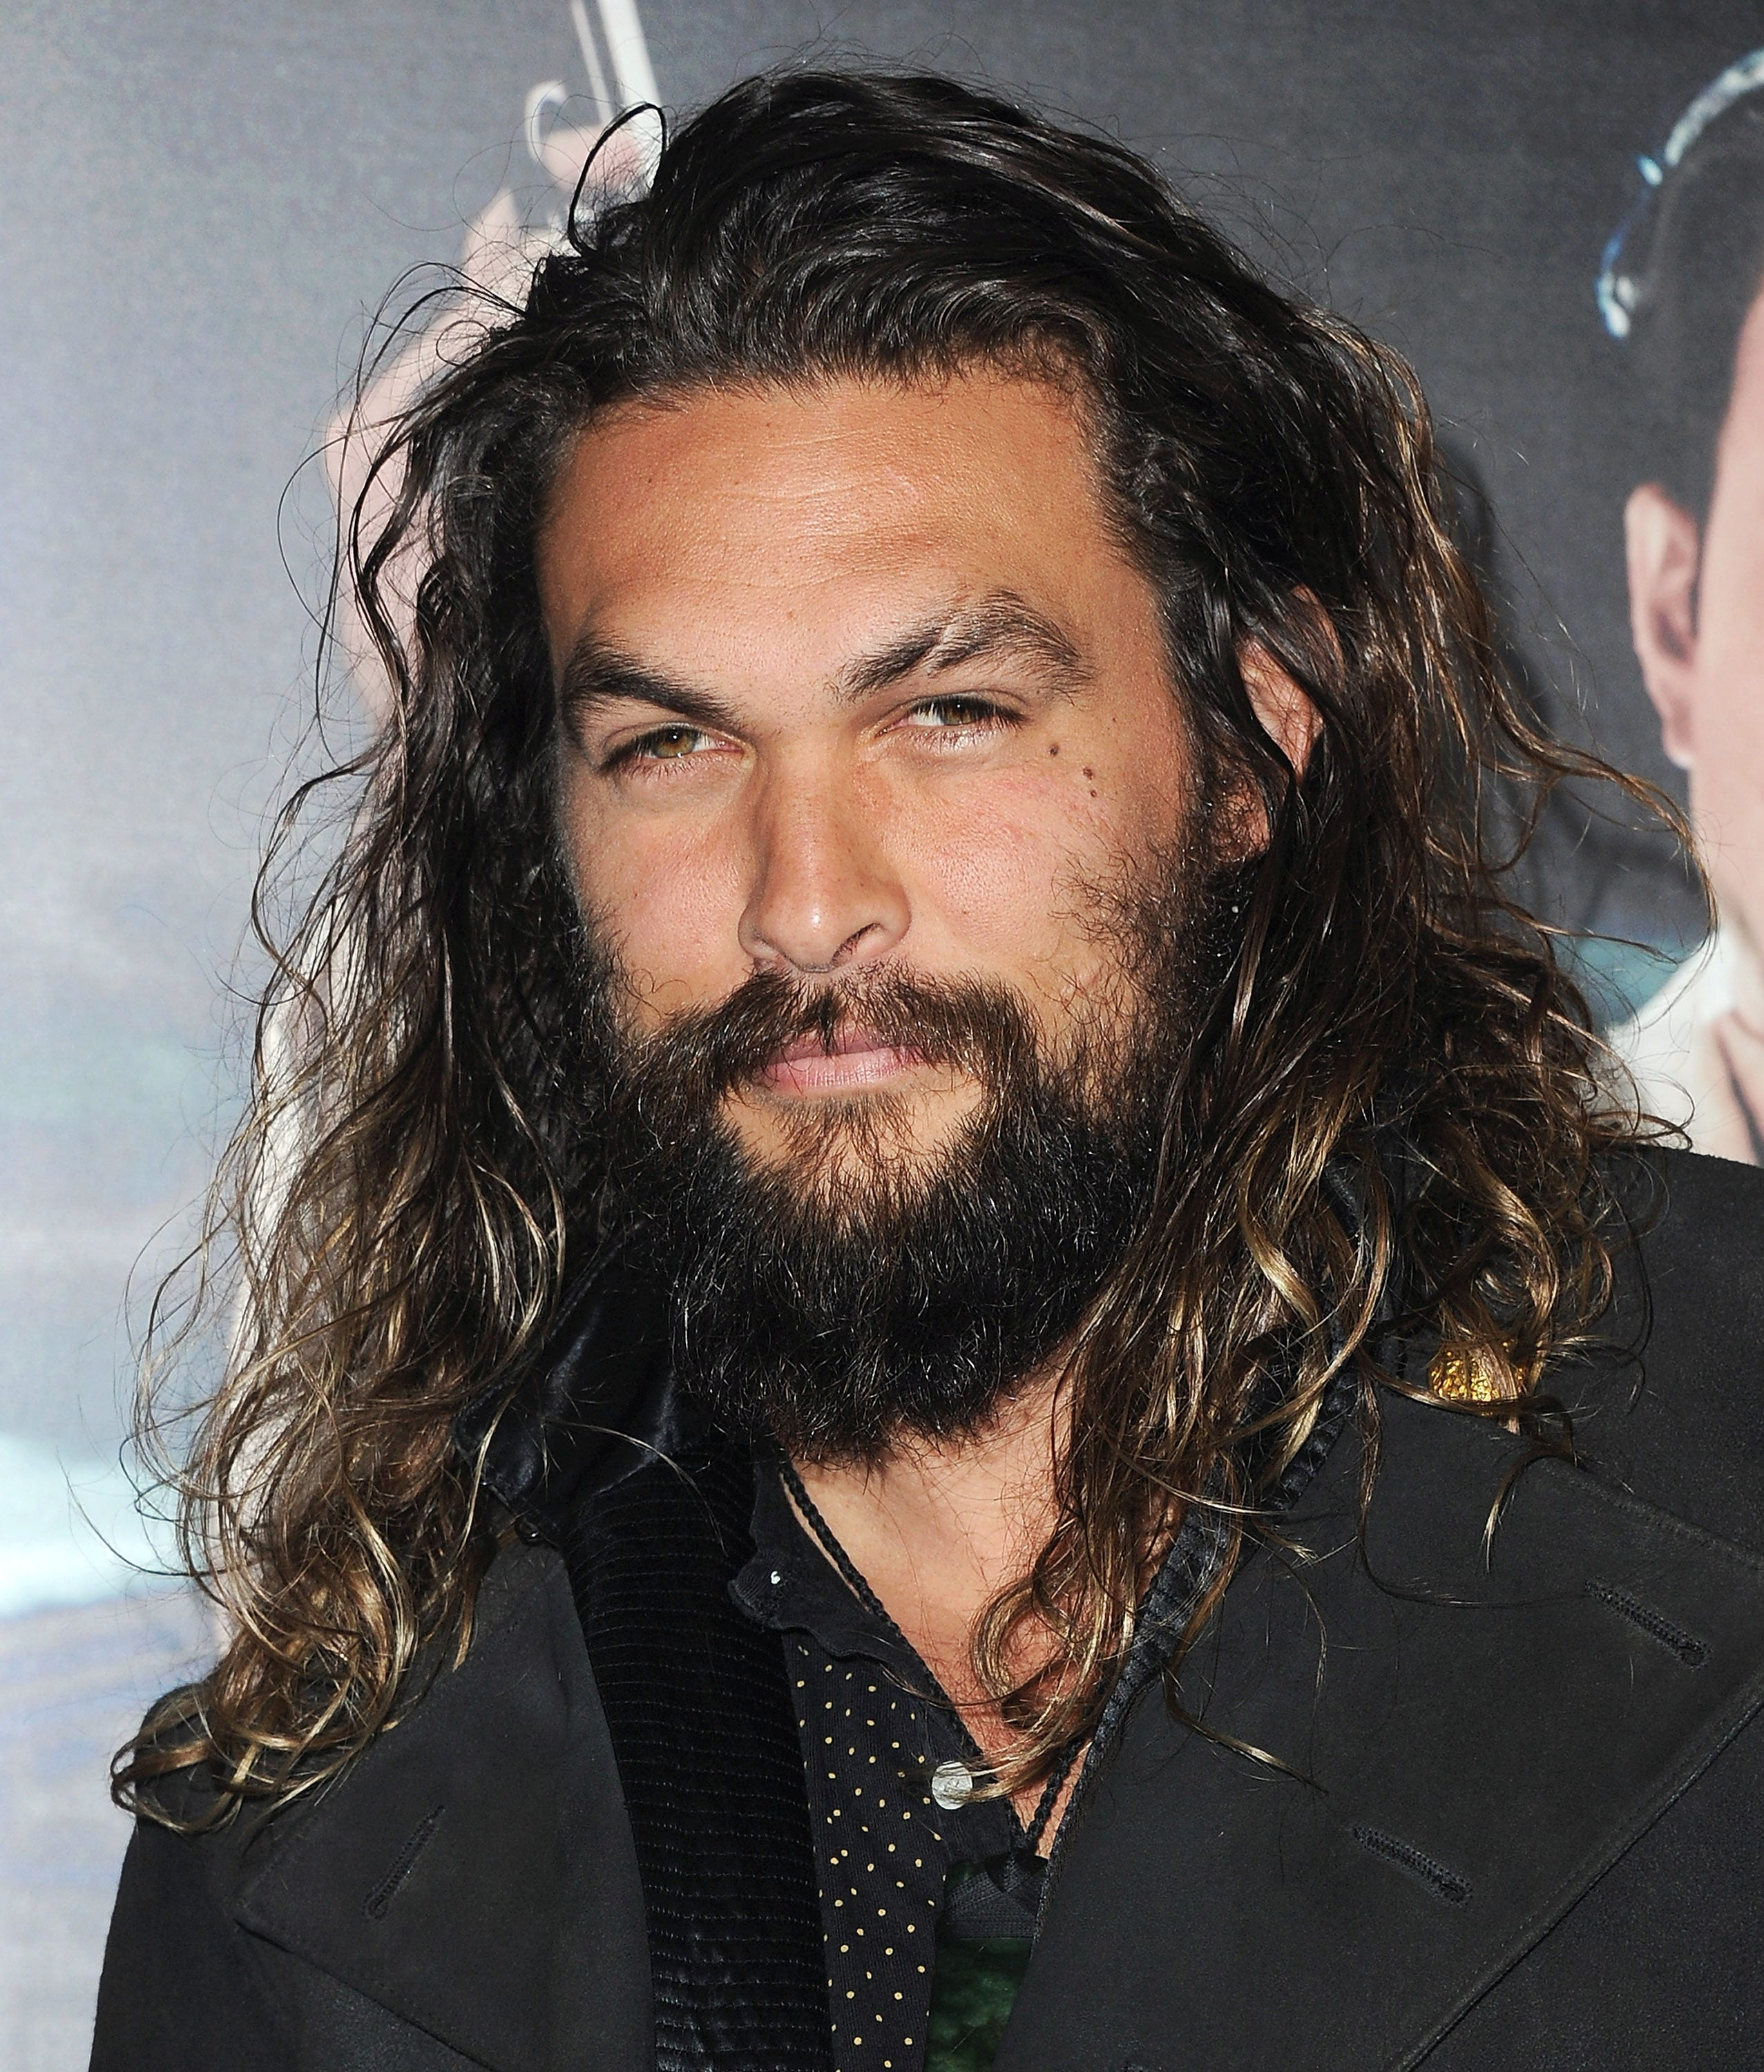 WHAT ABOUT JASON MOMOA AND HIS GLORIOUS GLORIOUS